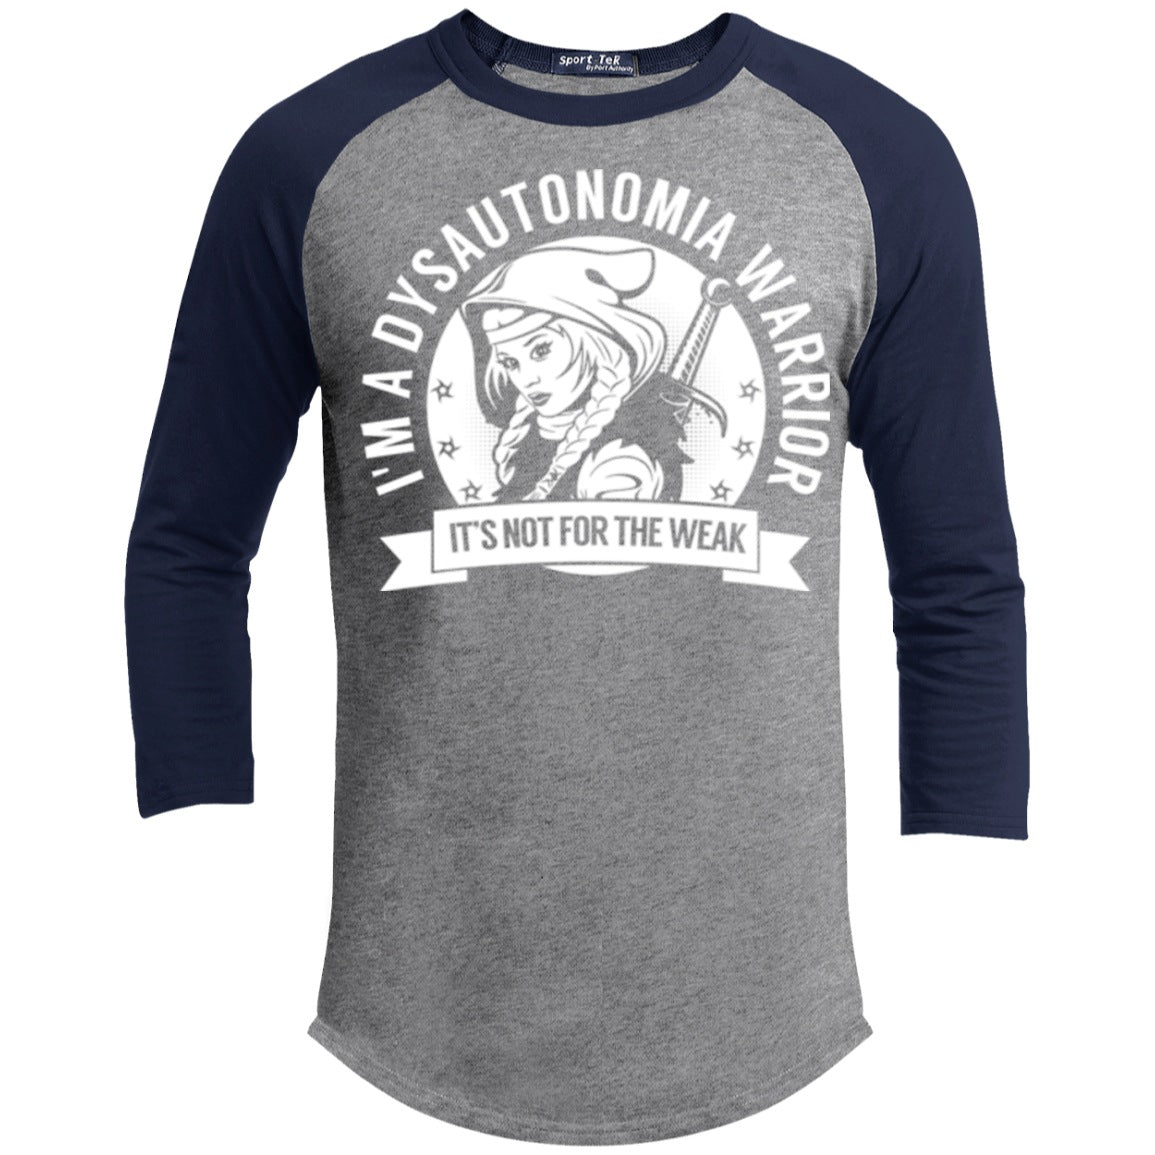 Dysautonomia Warrior Hooded Baseball Shirt - The Unchargeables